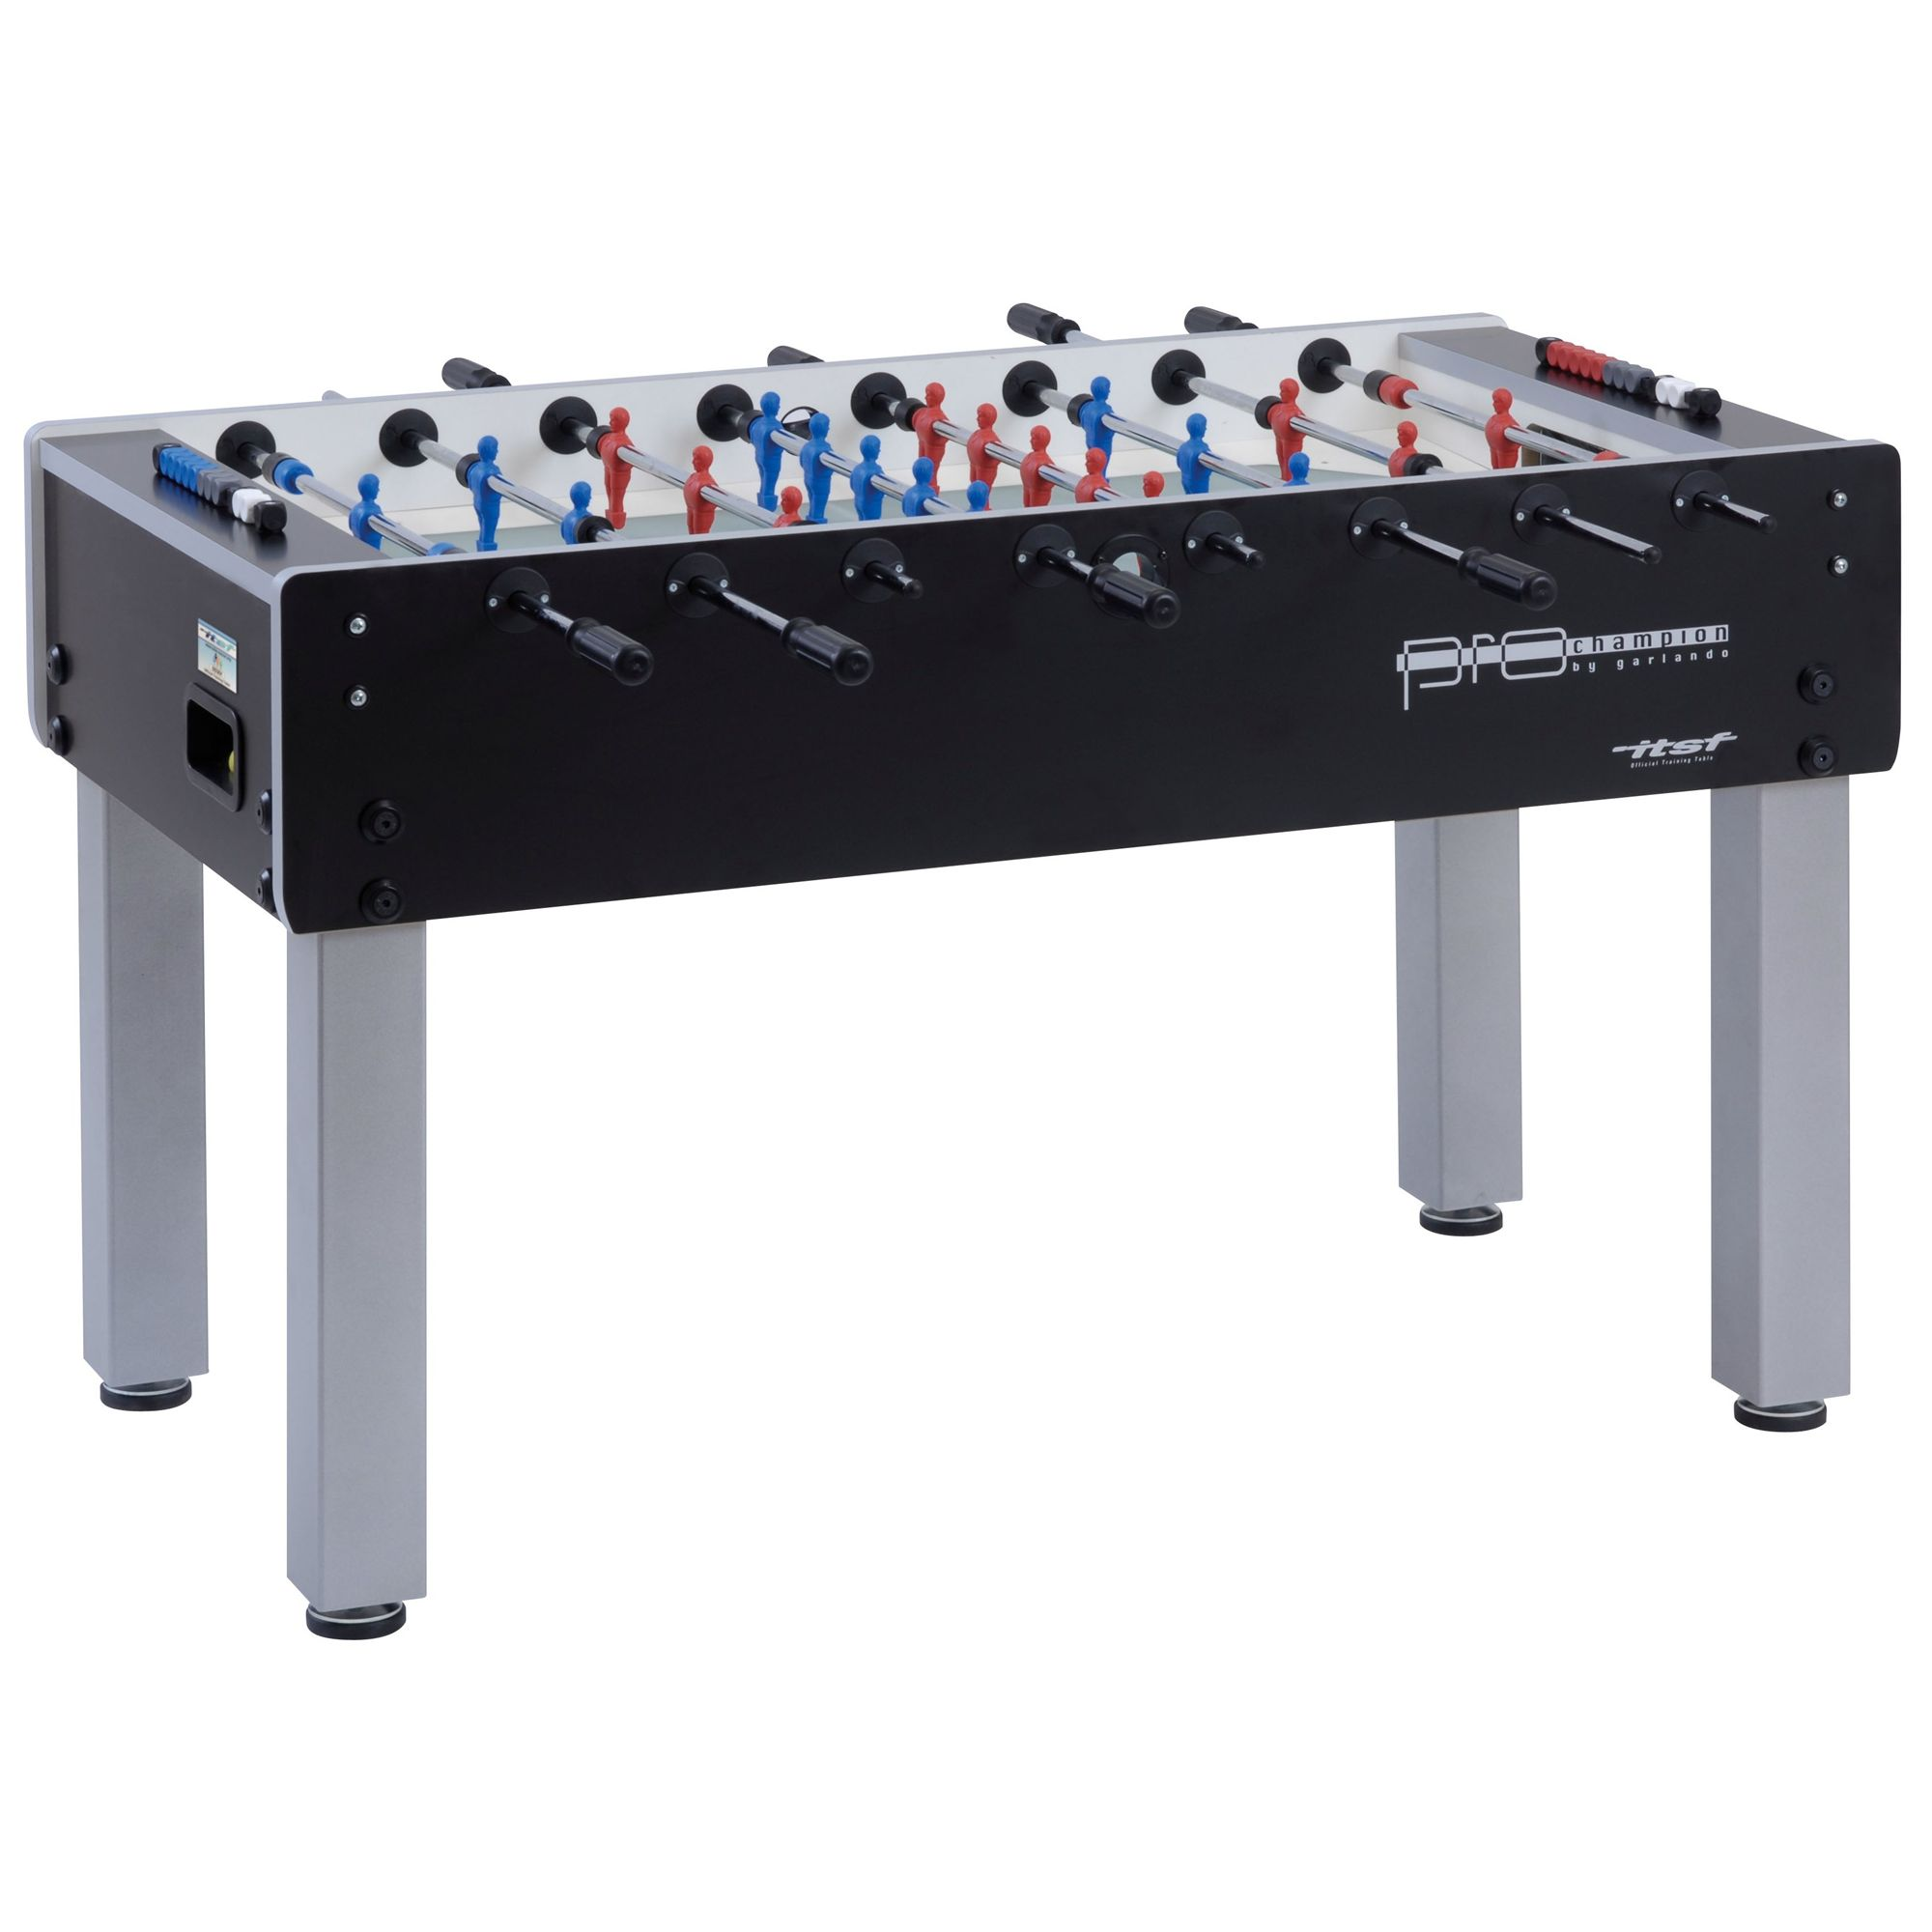 garlando pro champion itsf table football table. Black Bedroom Furniture Sets. Home Design Ideas